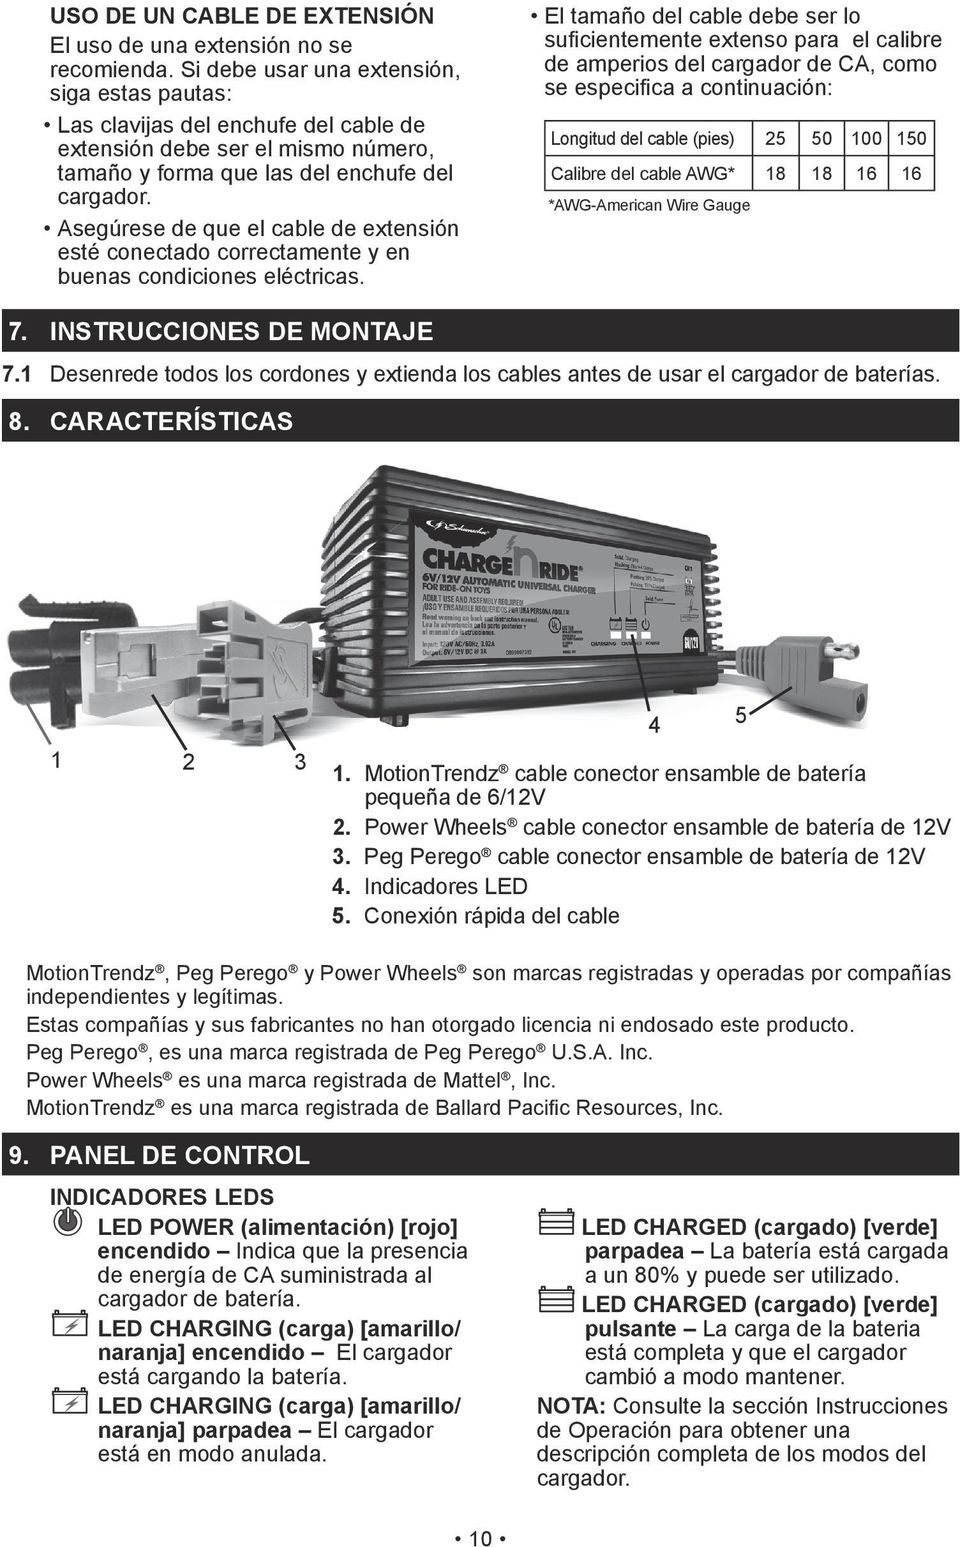 Model / Modelo: Cr1 6V/12V Universal Charger For Ride-On Toys 6V/12V - Schumacher Battery Charger Se-5212A Wiring Diagram